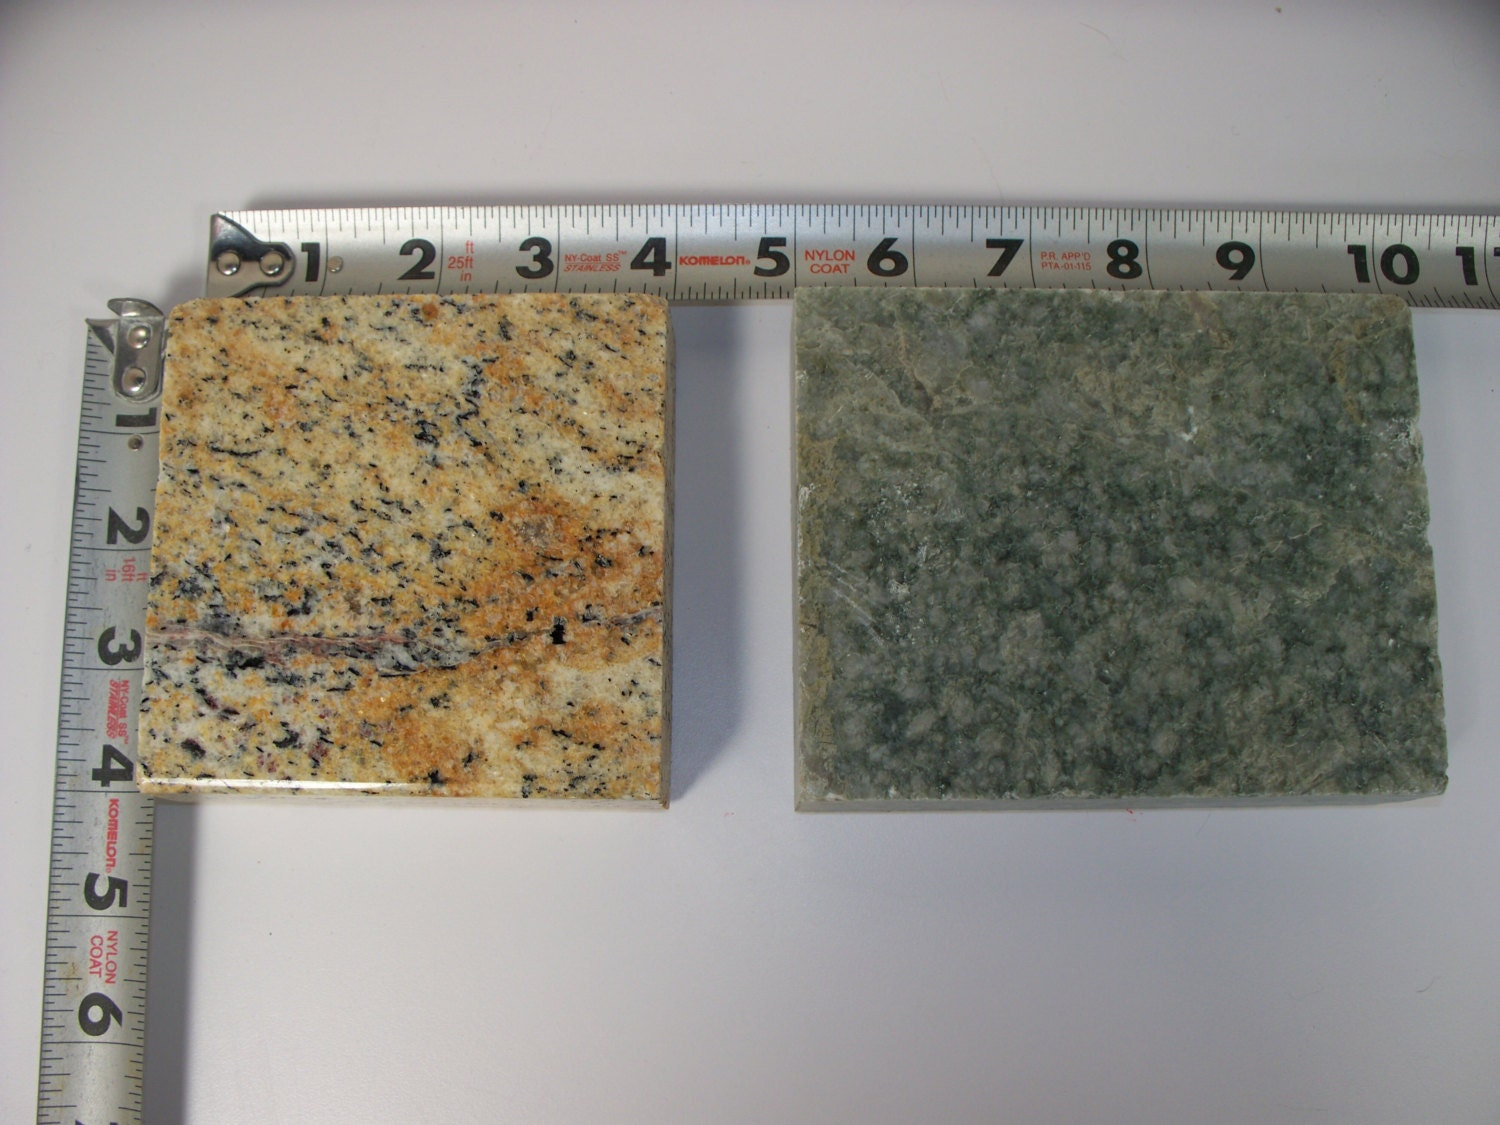 Granite Remnants Natural Stone Recycled Countertop Pieces Mosaic Stone ...